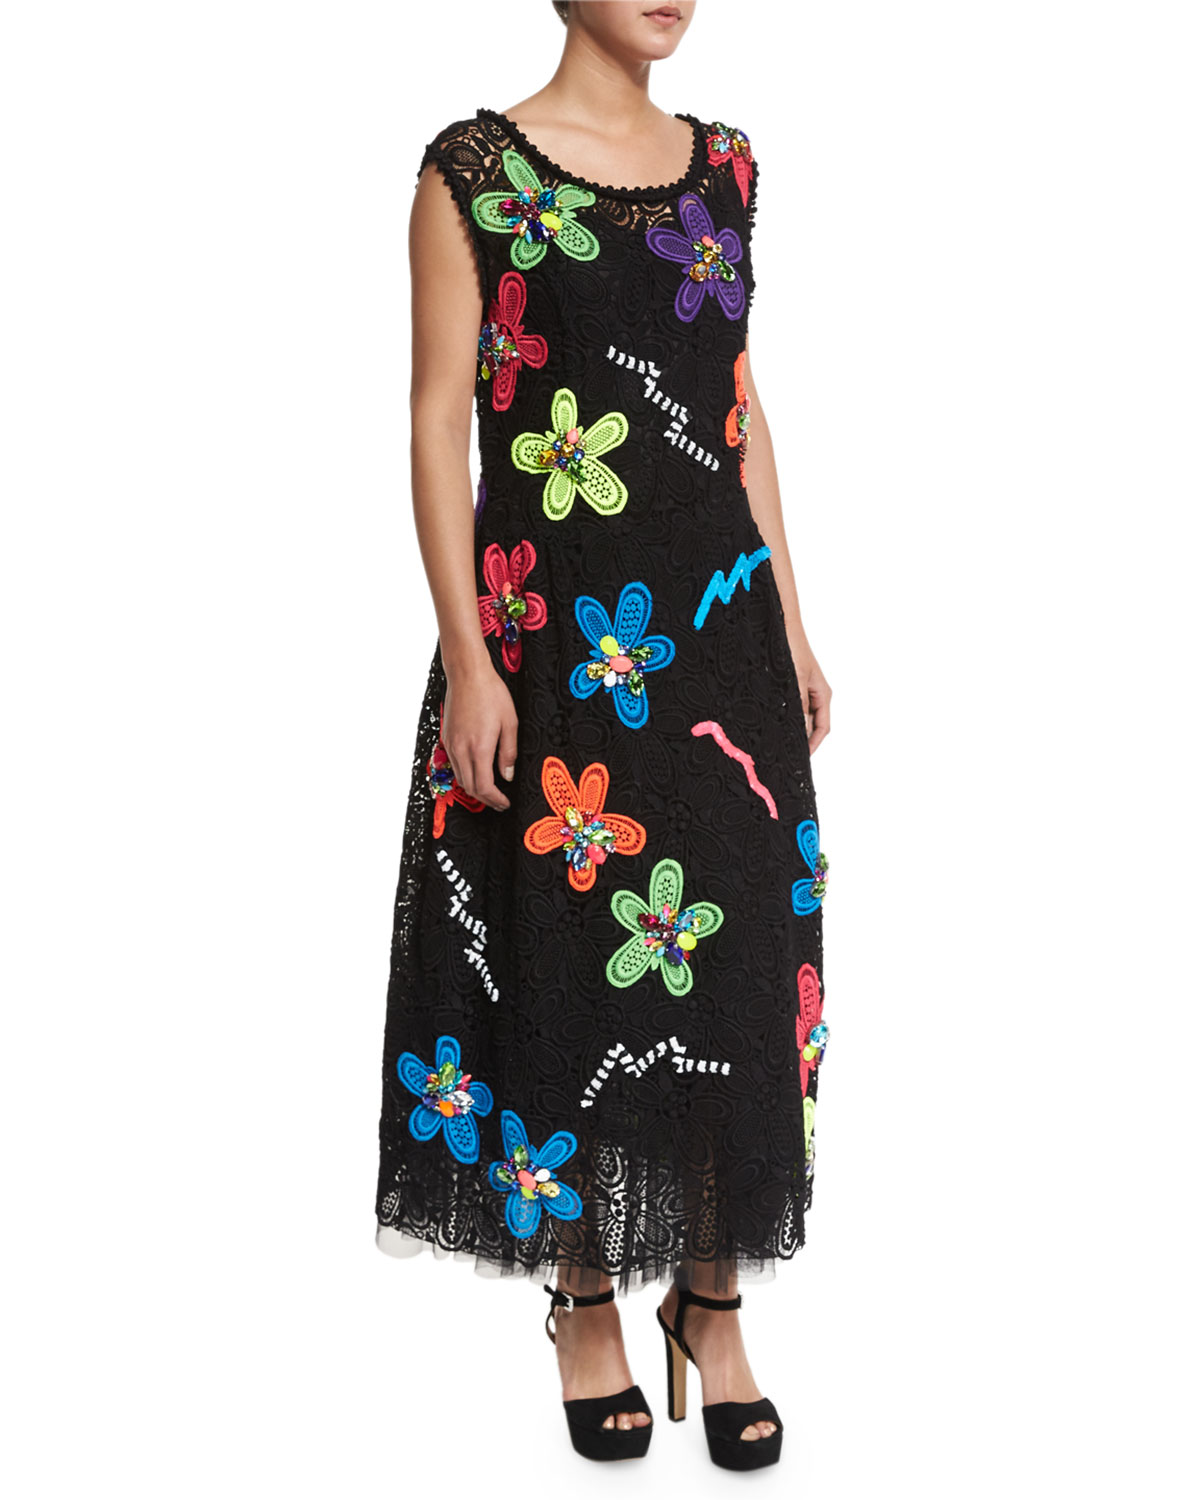 Neon Flower-Embroidered Guipure Dress, Black